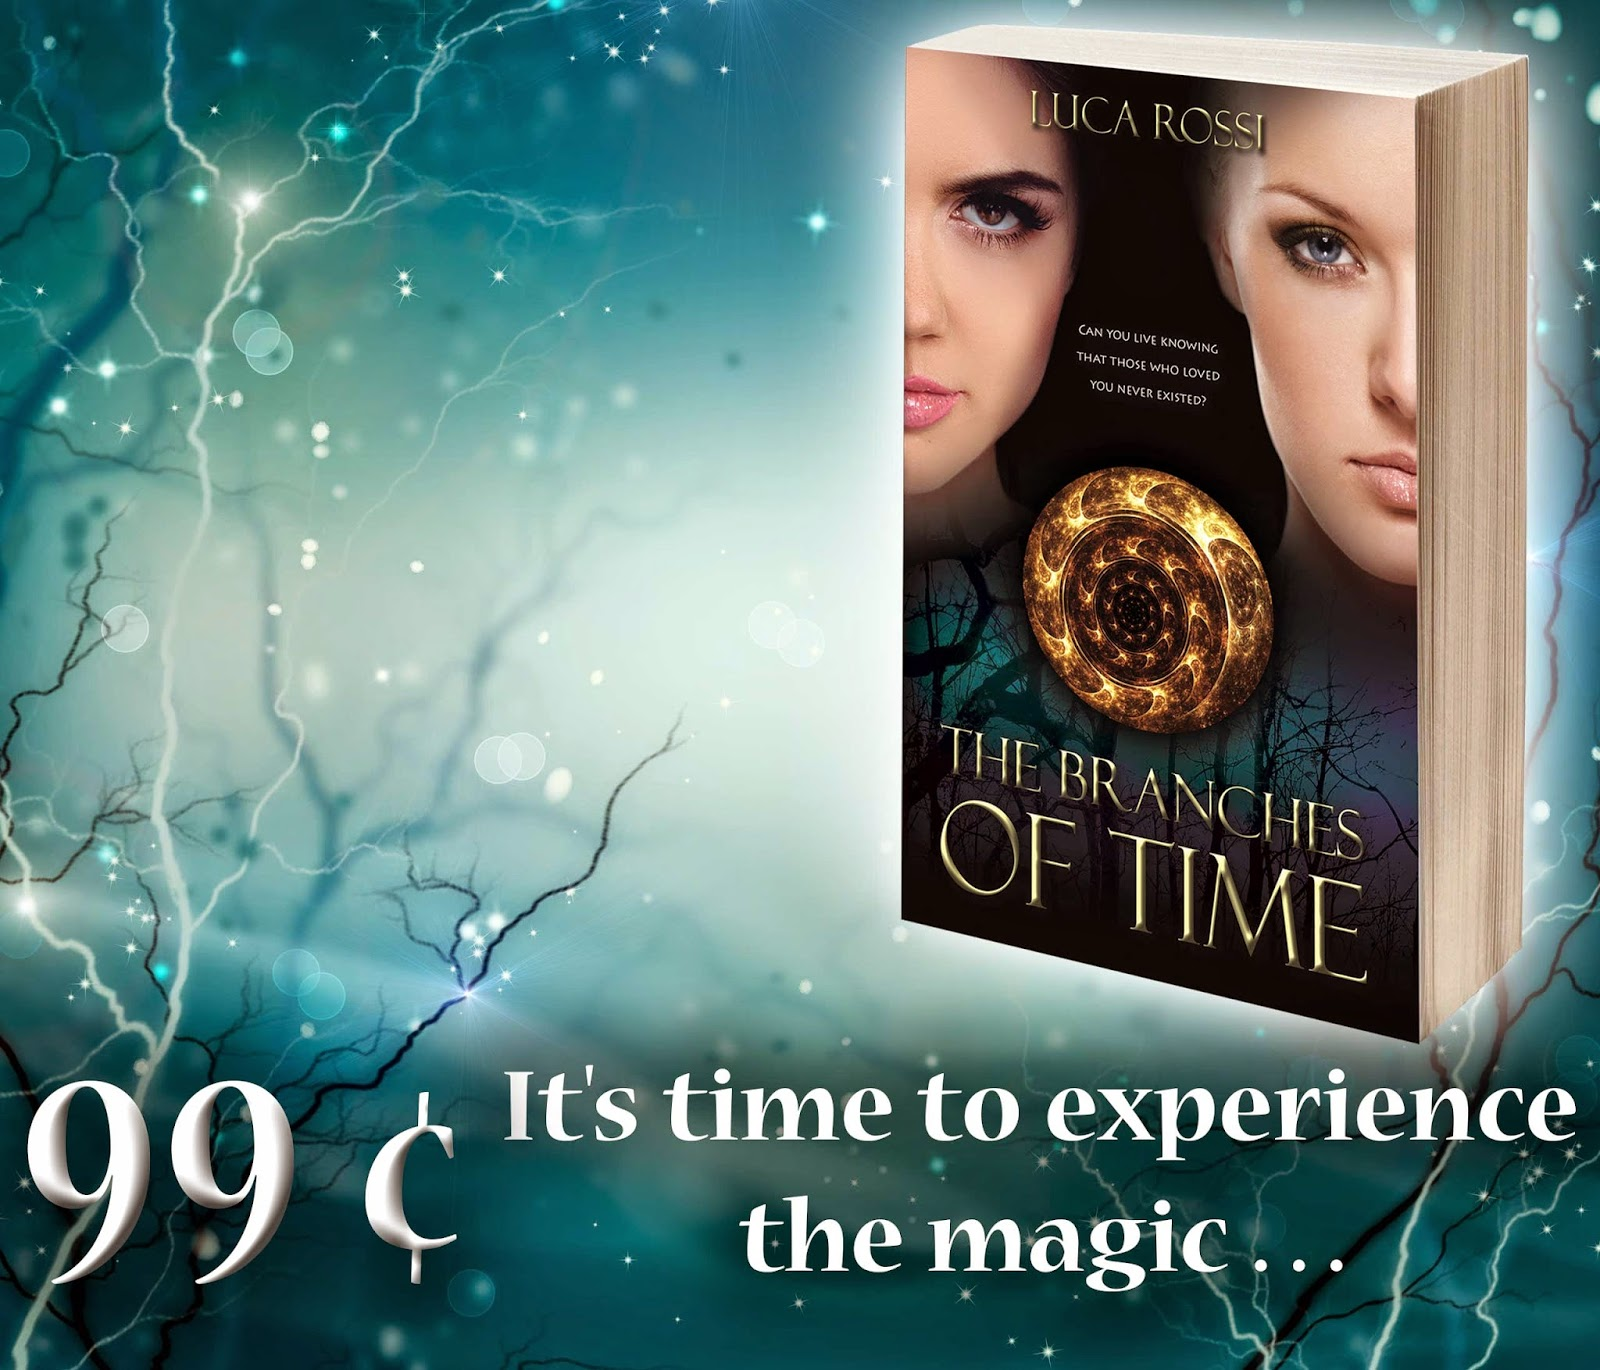 The Branches of Time - 99cent deal